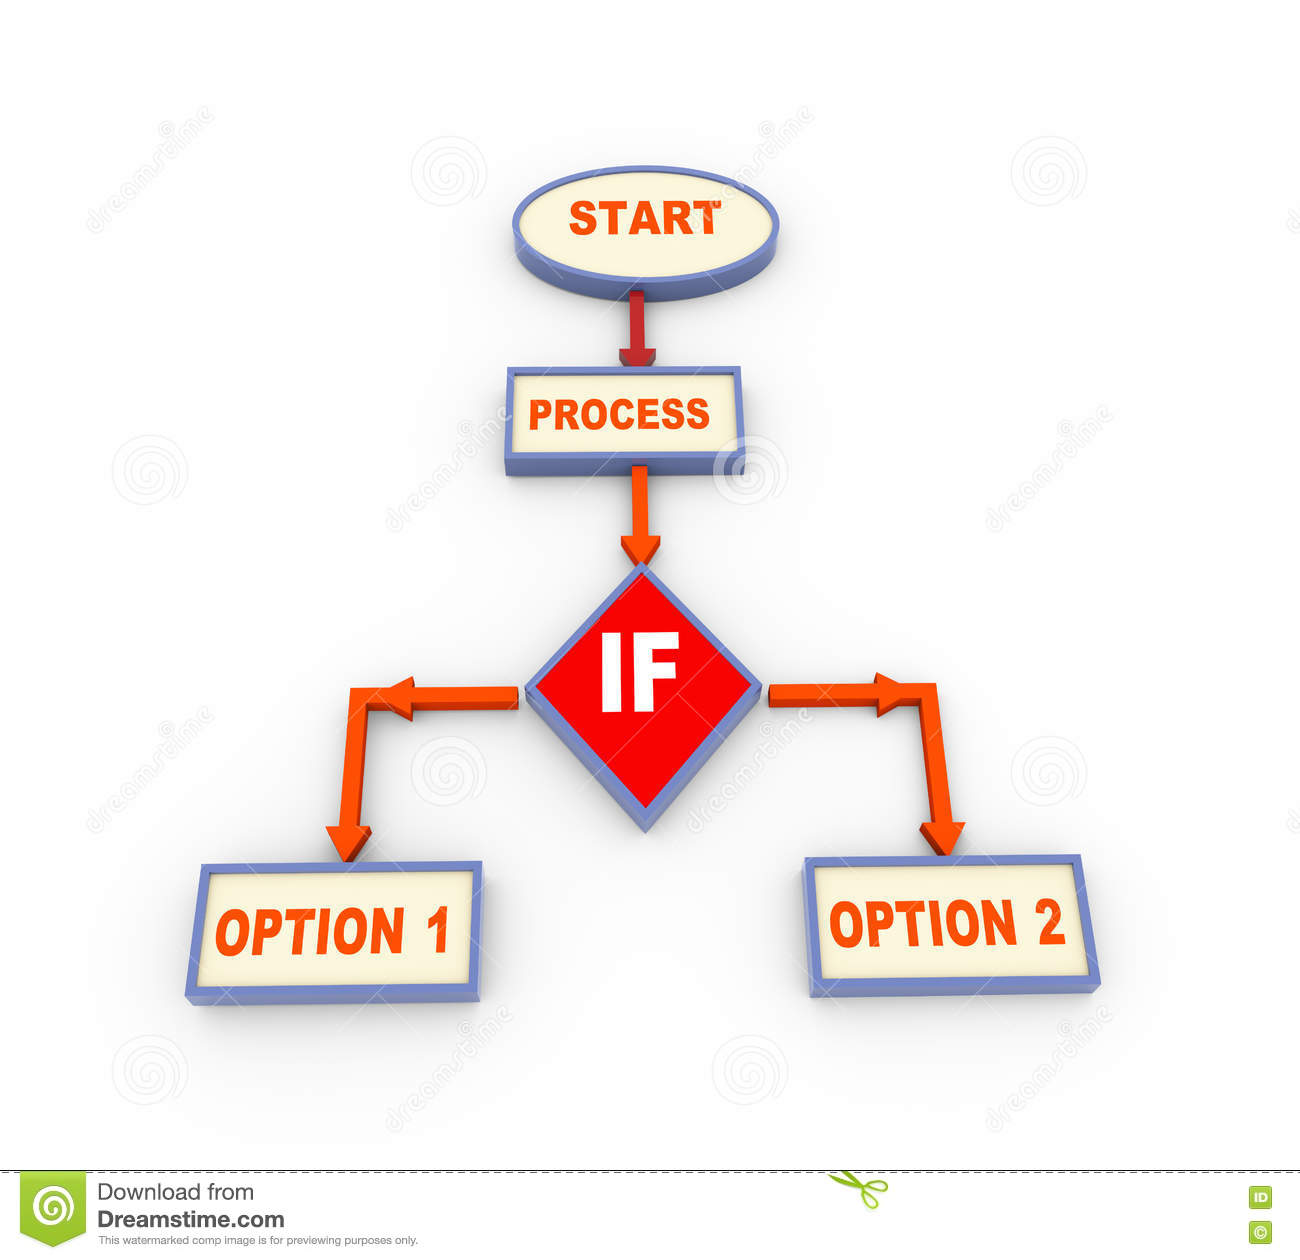 hight resolution of 3d process flow chart with if condition